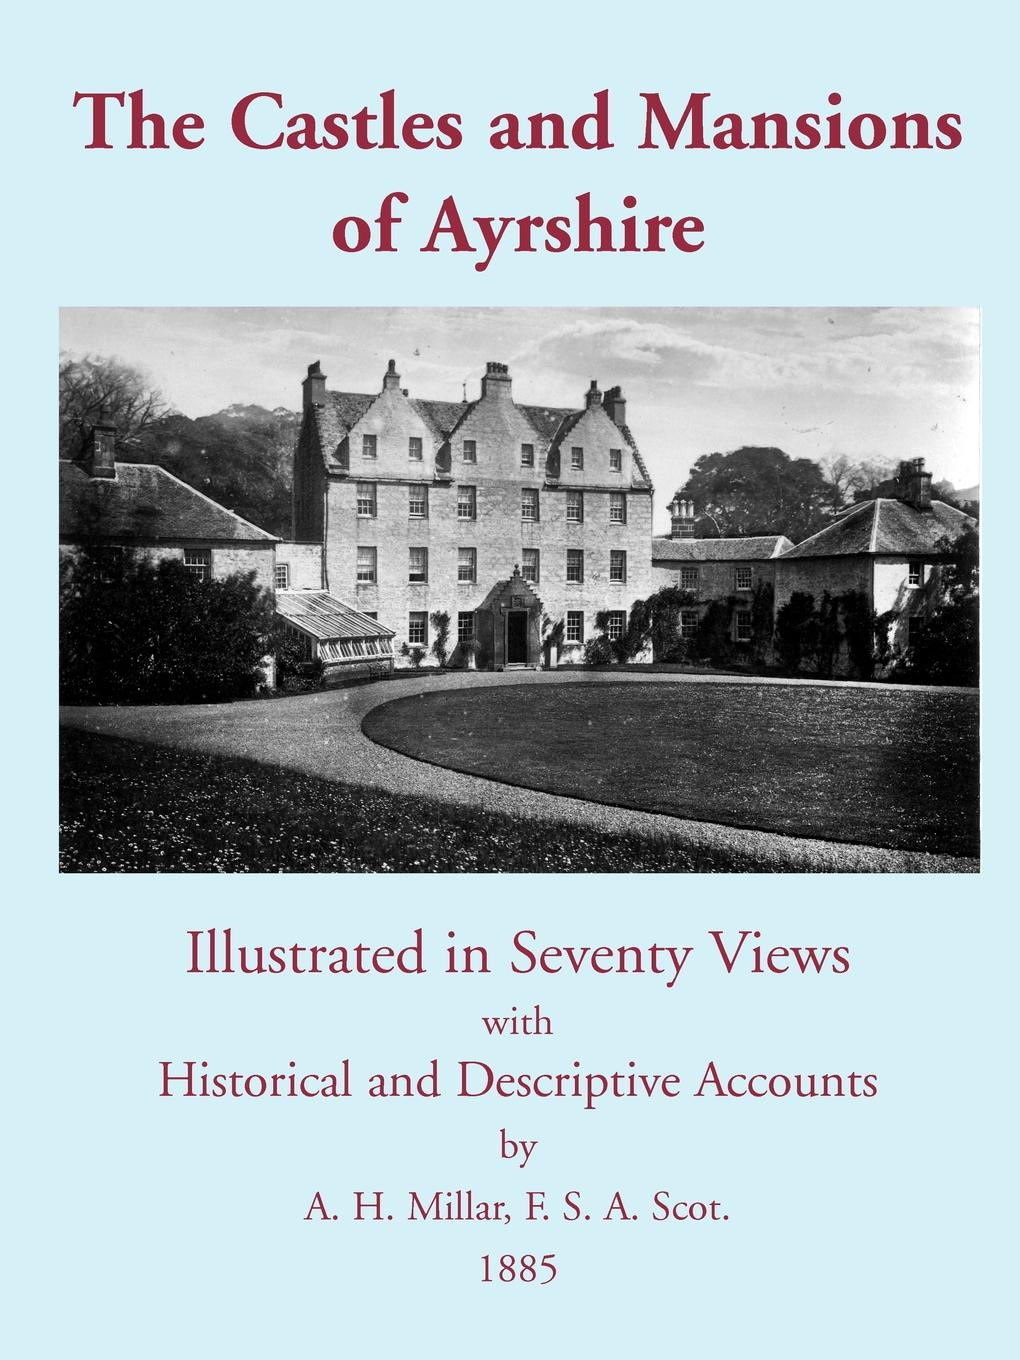 The Castles and Mansions of Ayrshire, 1885